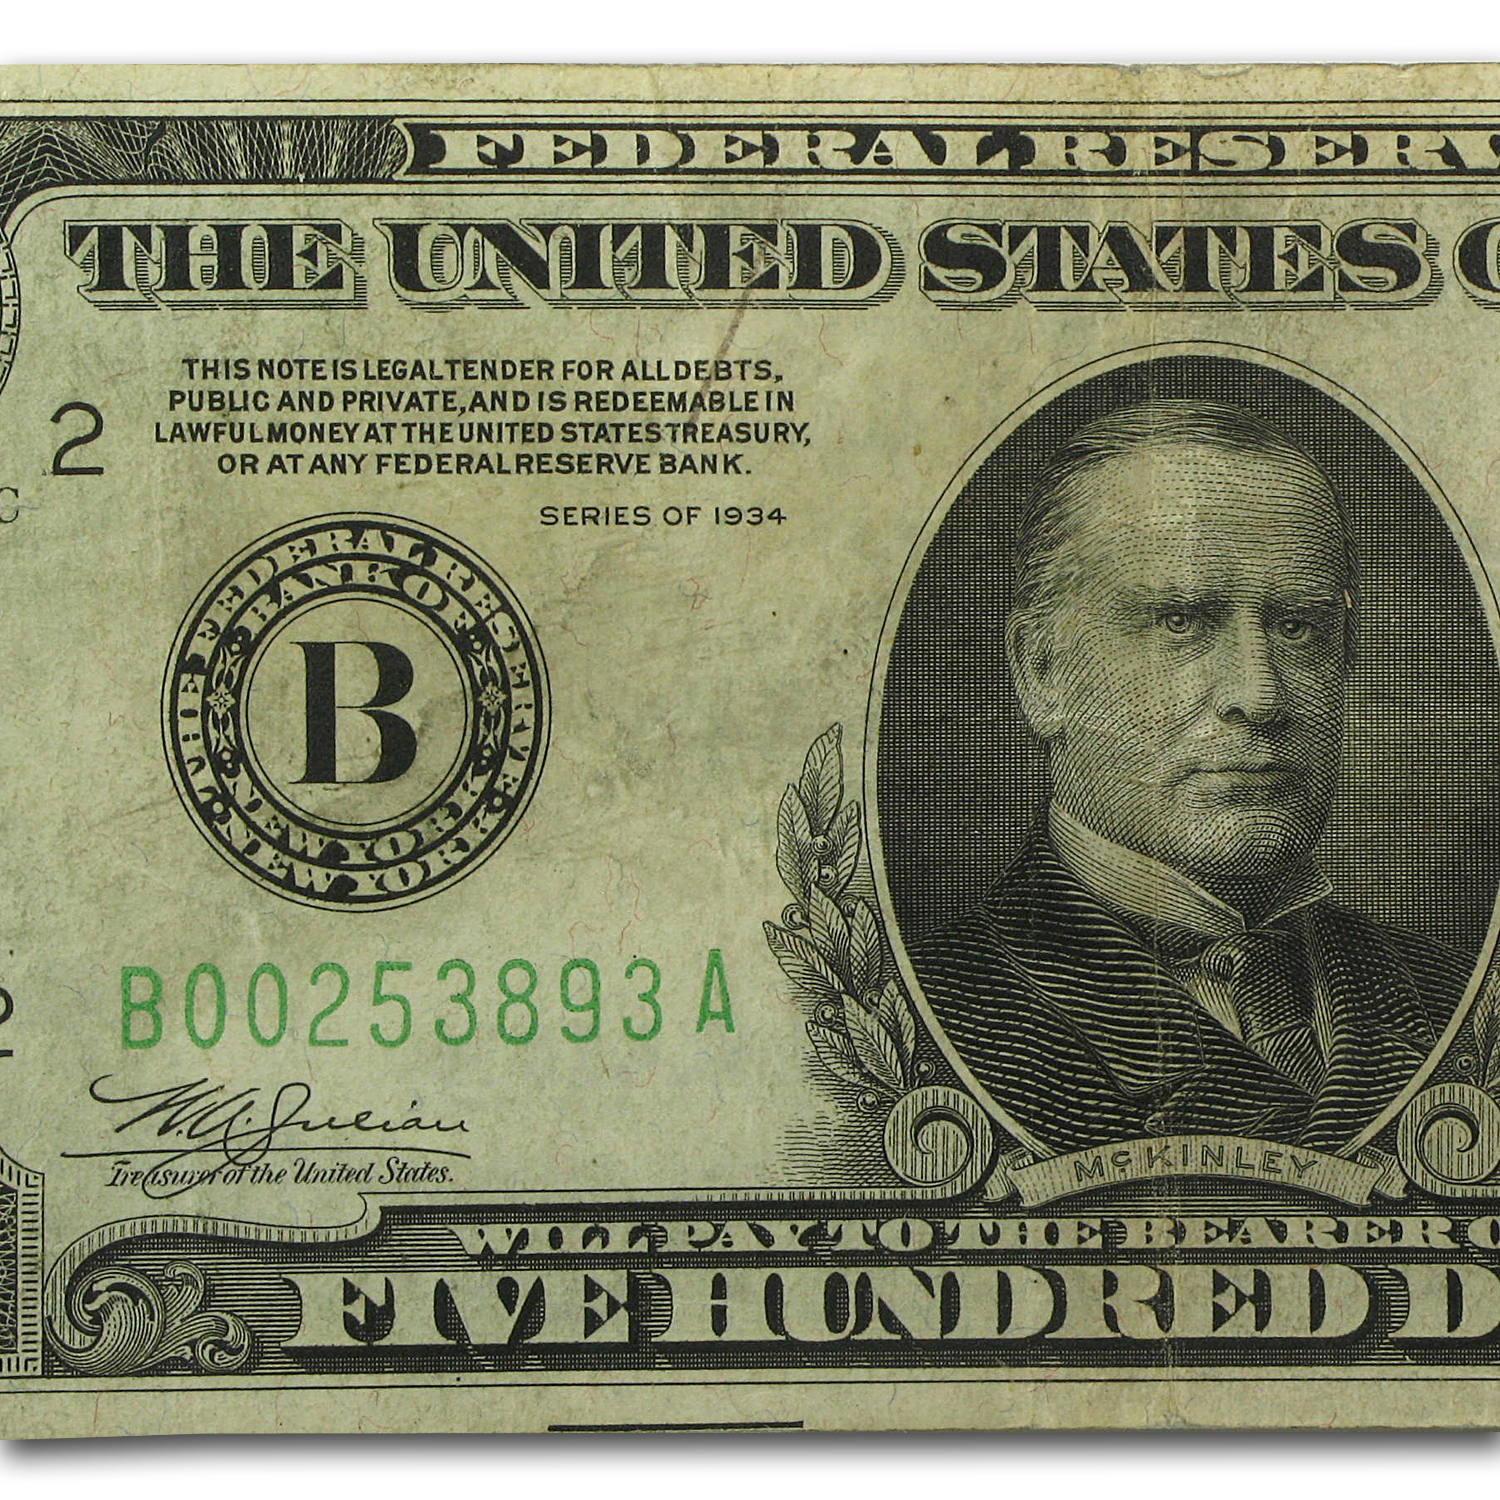 1934 (B-New York) $500 FRN (Very Fine)